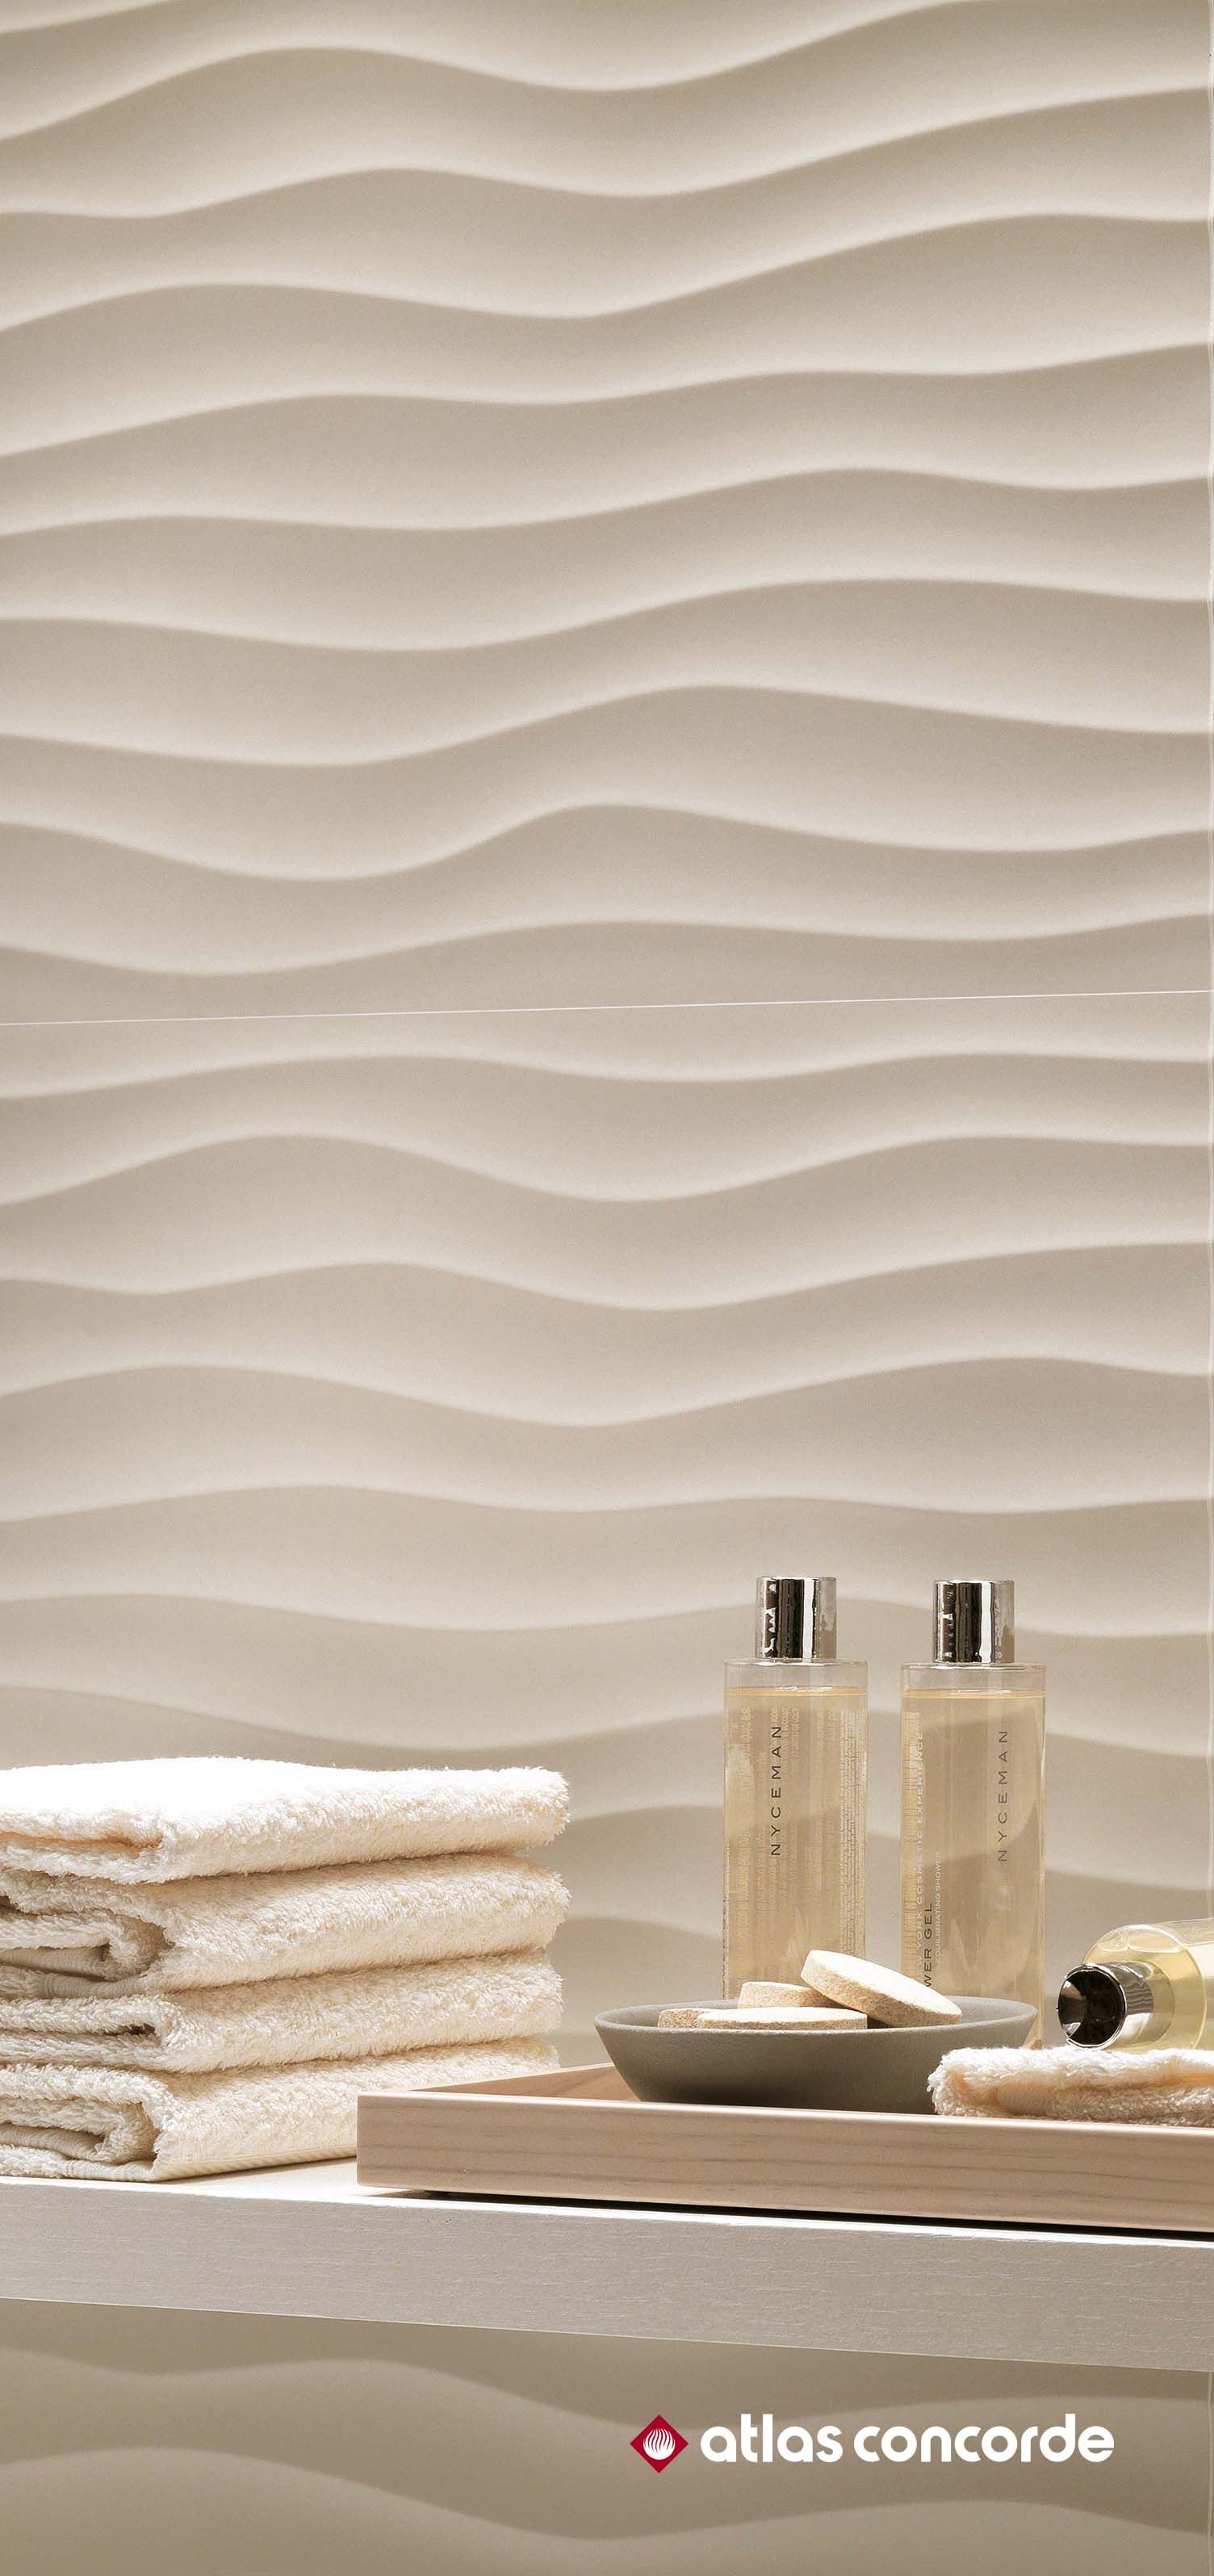 pin by atlas concorde on 3d wall tiles pinterest 3d wall